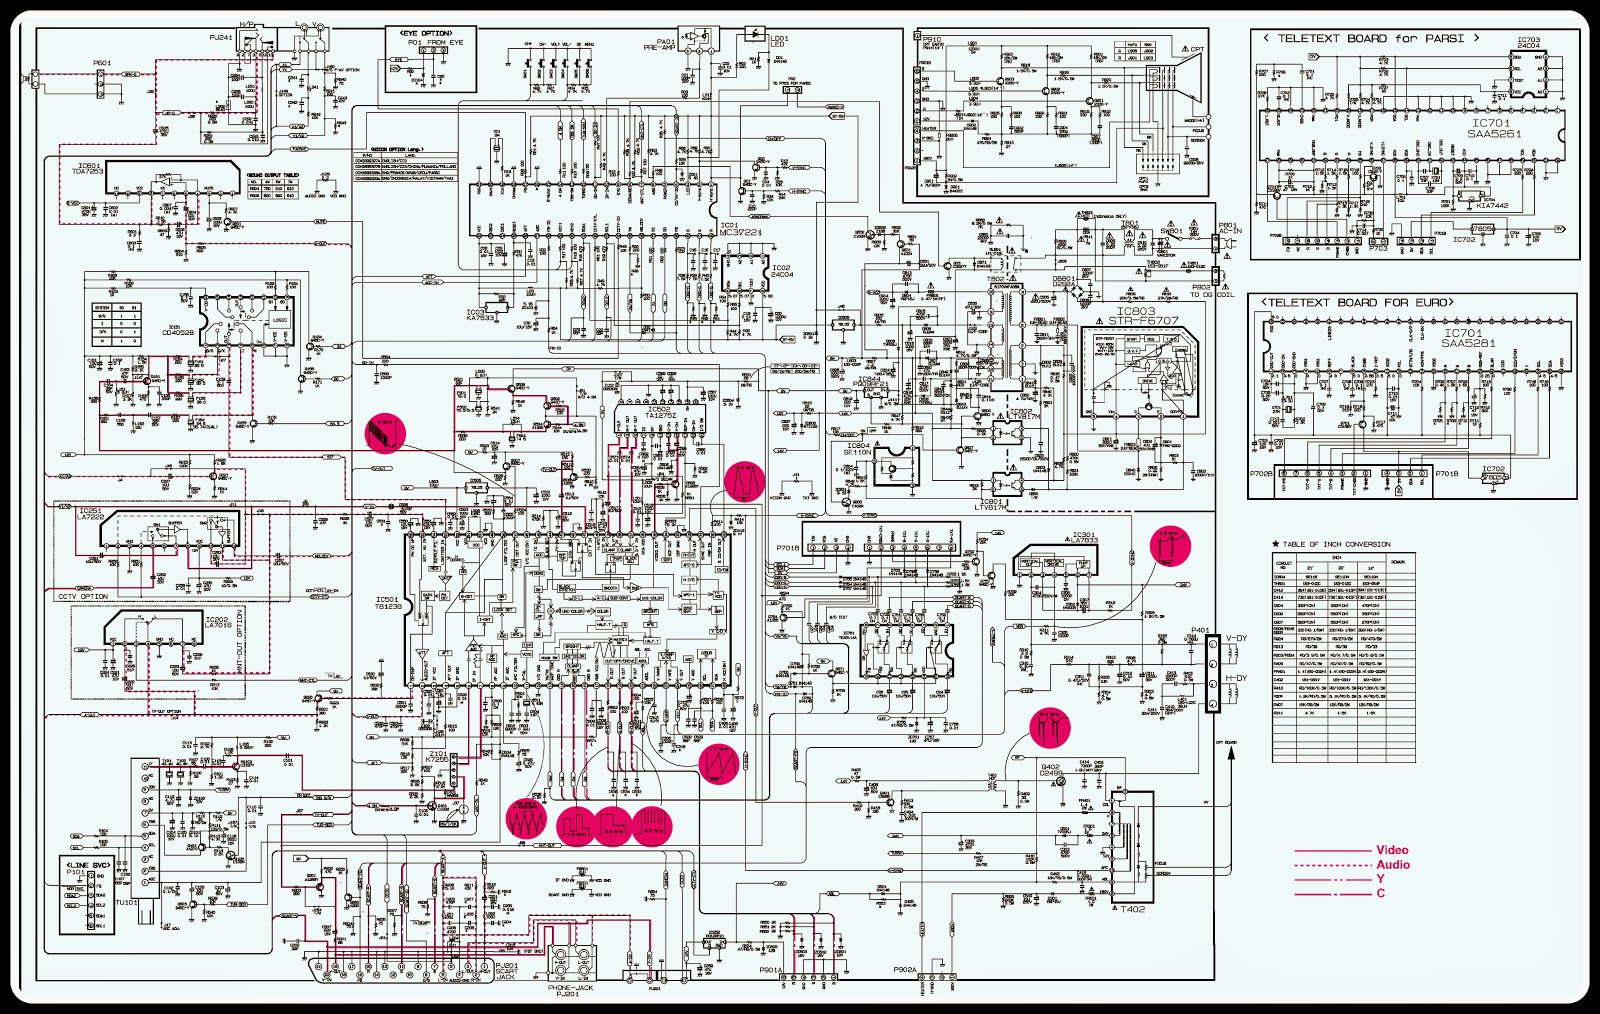 ge monitor top wiring diagram ge nautilus dishwasher wiring diagram images 806 x 612 jpeg 76kb ge microwave oven wiring diagram